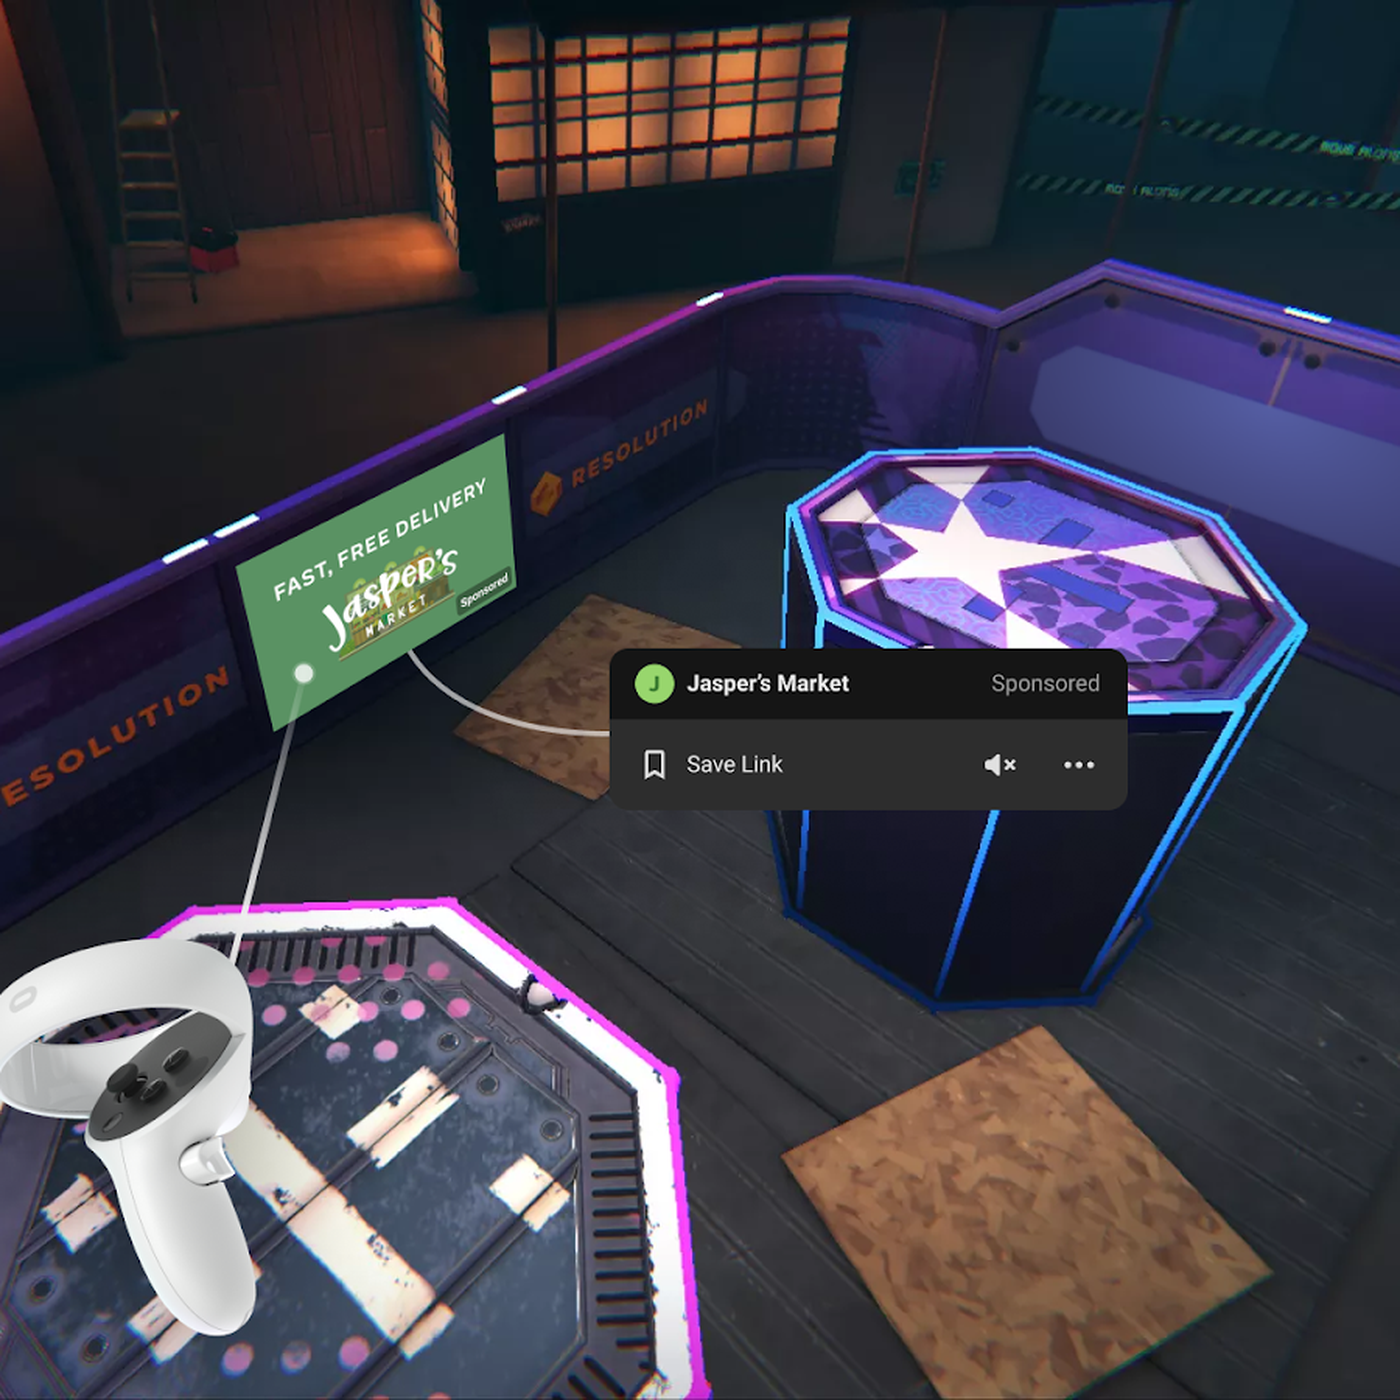 Facebook will start putting ads in Oculus Quest apps - The Verge